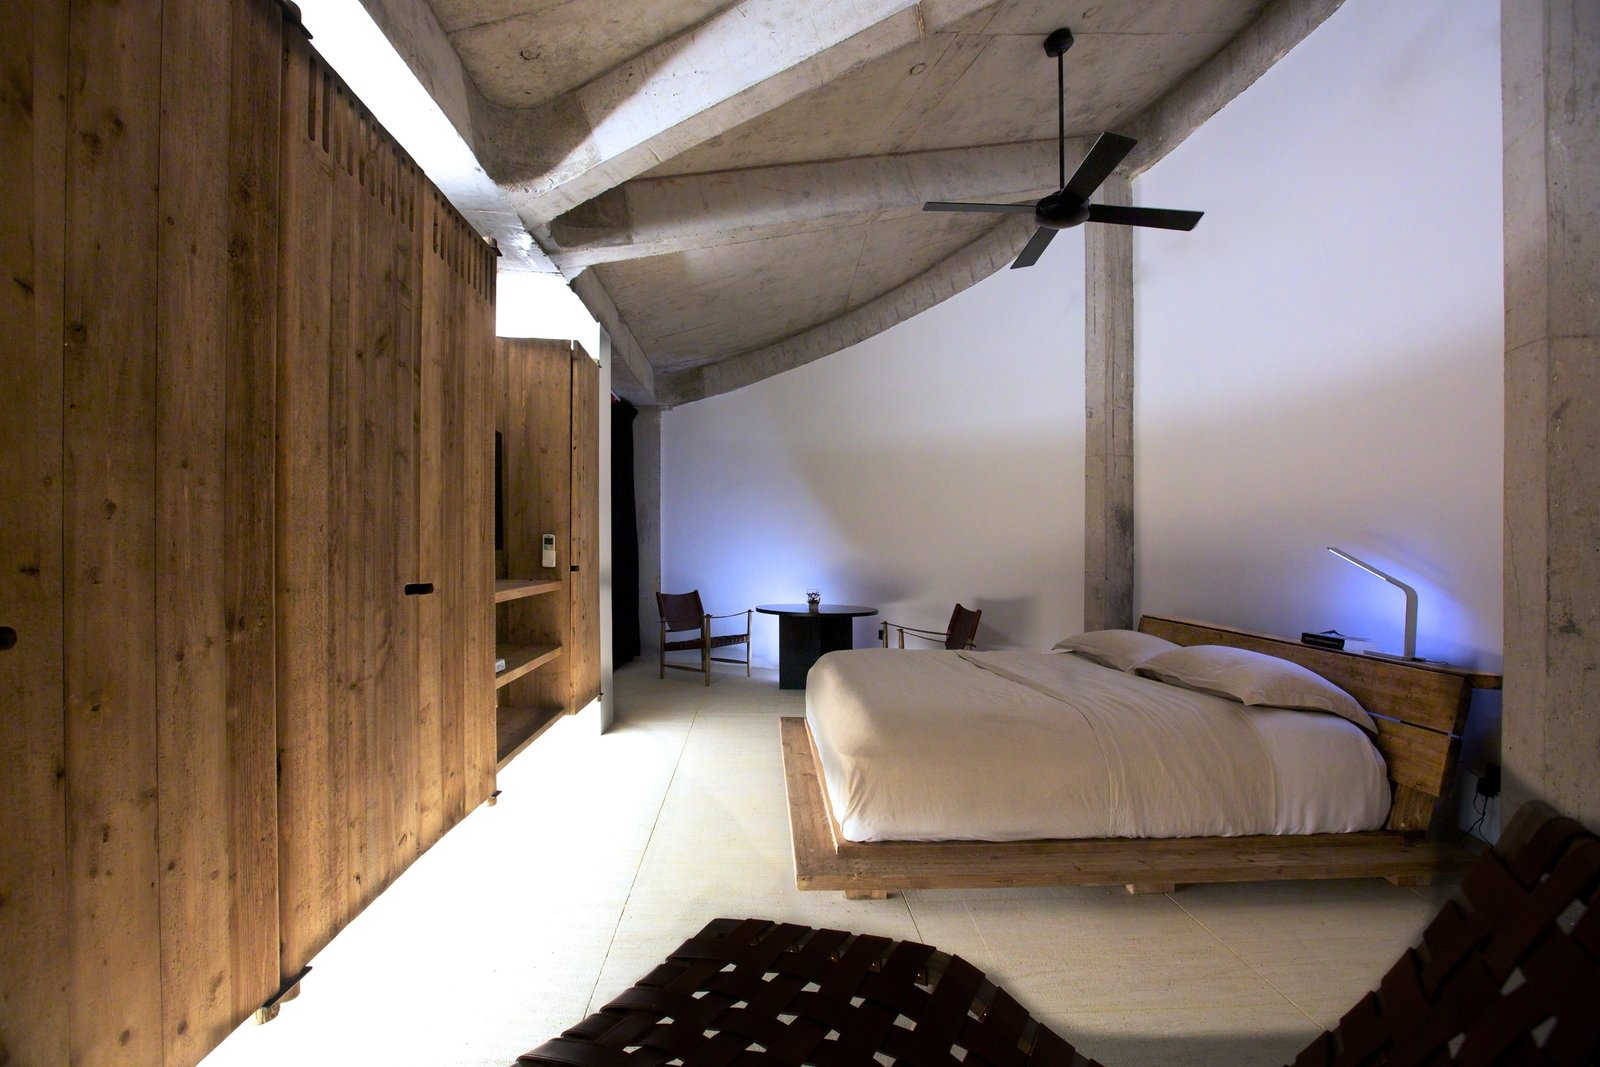 The Round Houses feature sleeping quarters outfitted with Timothy Oulton Brigadier mattresses and covers. The bed and wardrobe unit were both custom-made using reclaimed pine. Beyond the bed, a Halo Brussels armchair and marble coffee table serve as a space for private contemplation and relaxation.  Photo 7 of 8 in A British Furniture Brand Built This Round Village in China